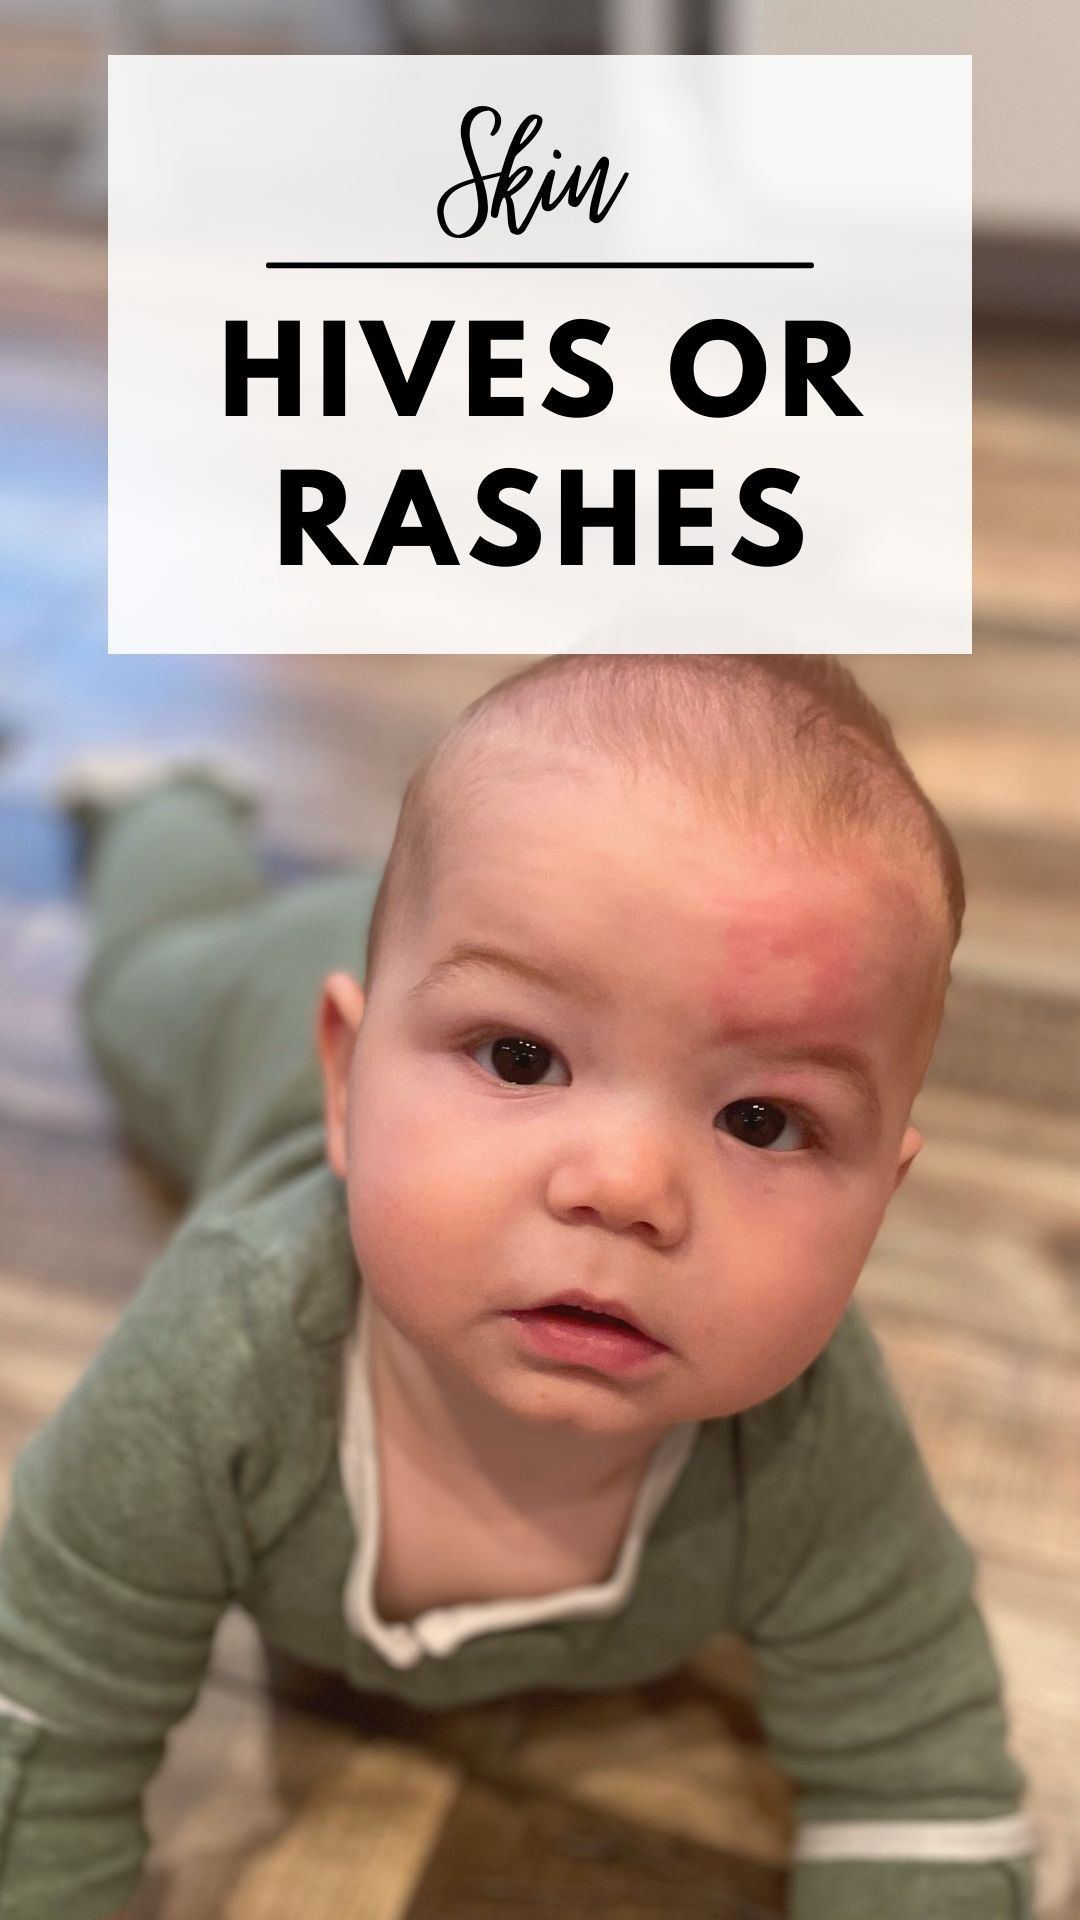 Section separator discussing hives or rashes for food allergies with baby face.